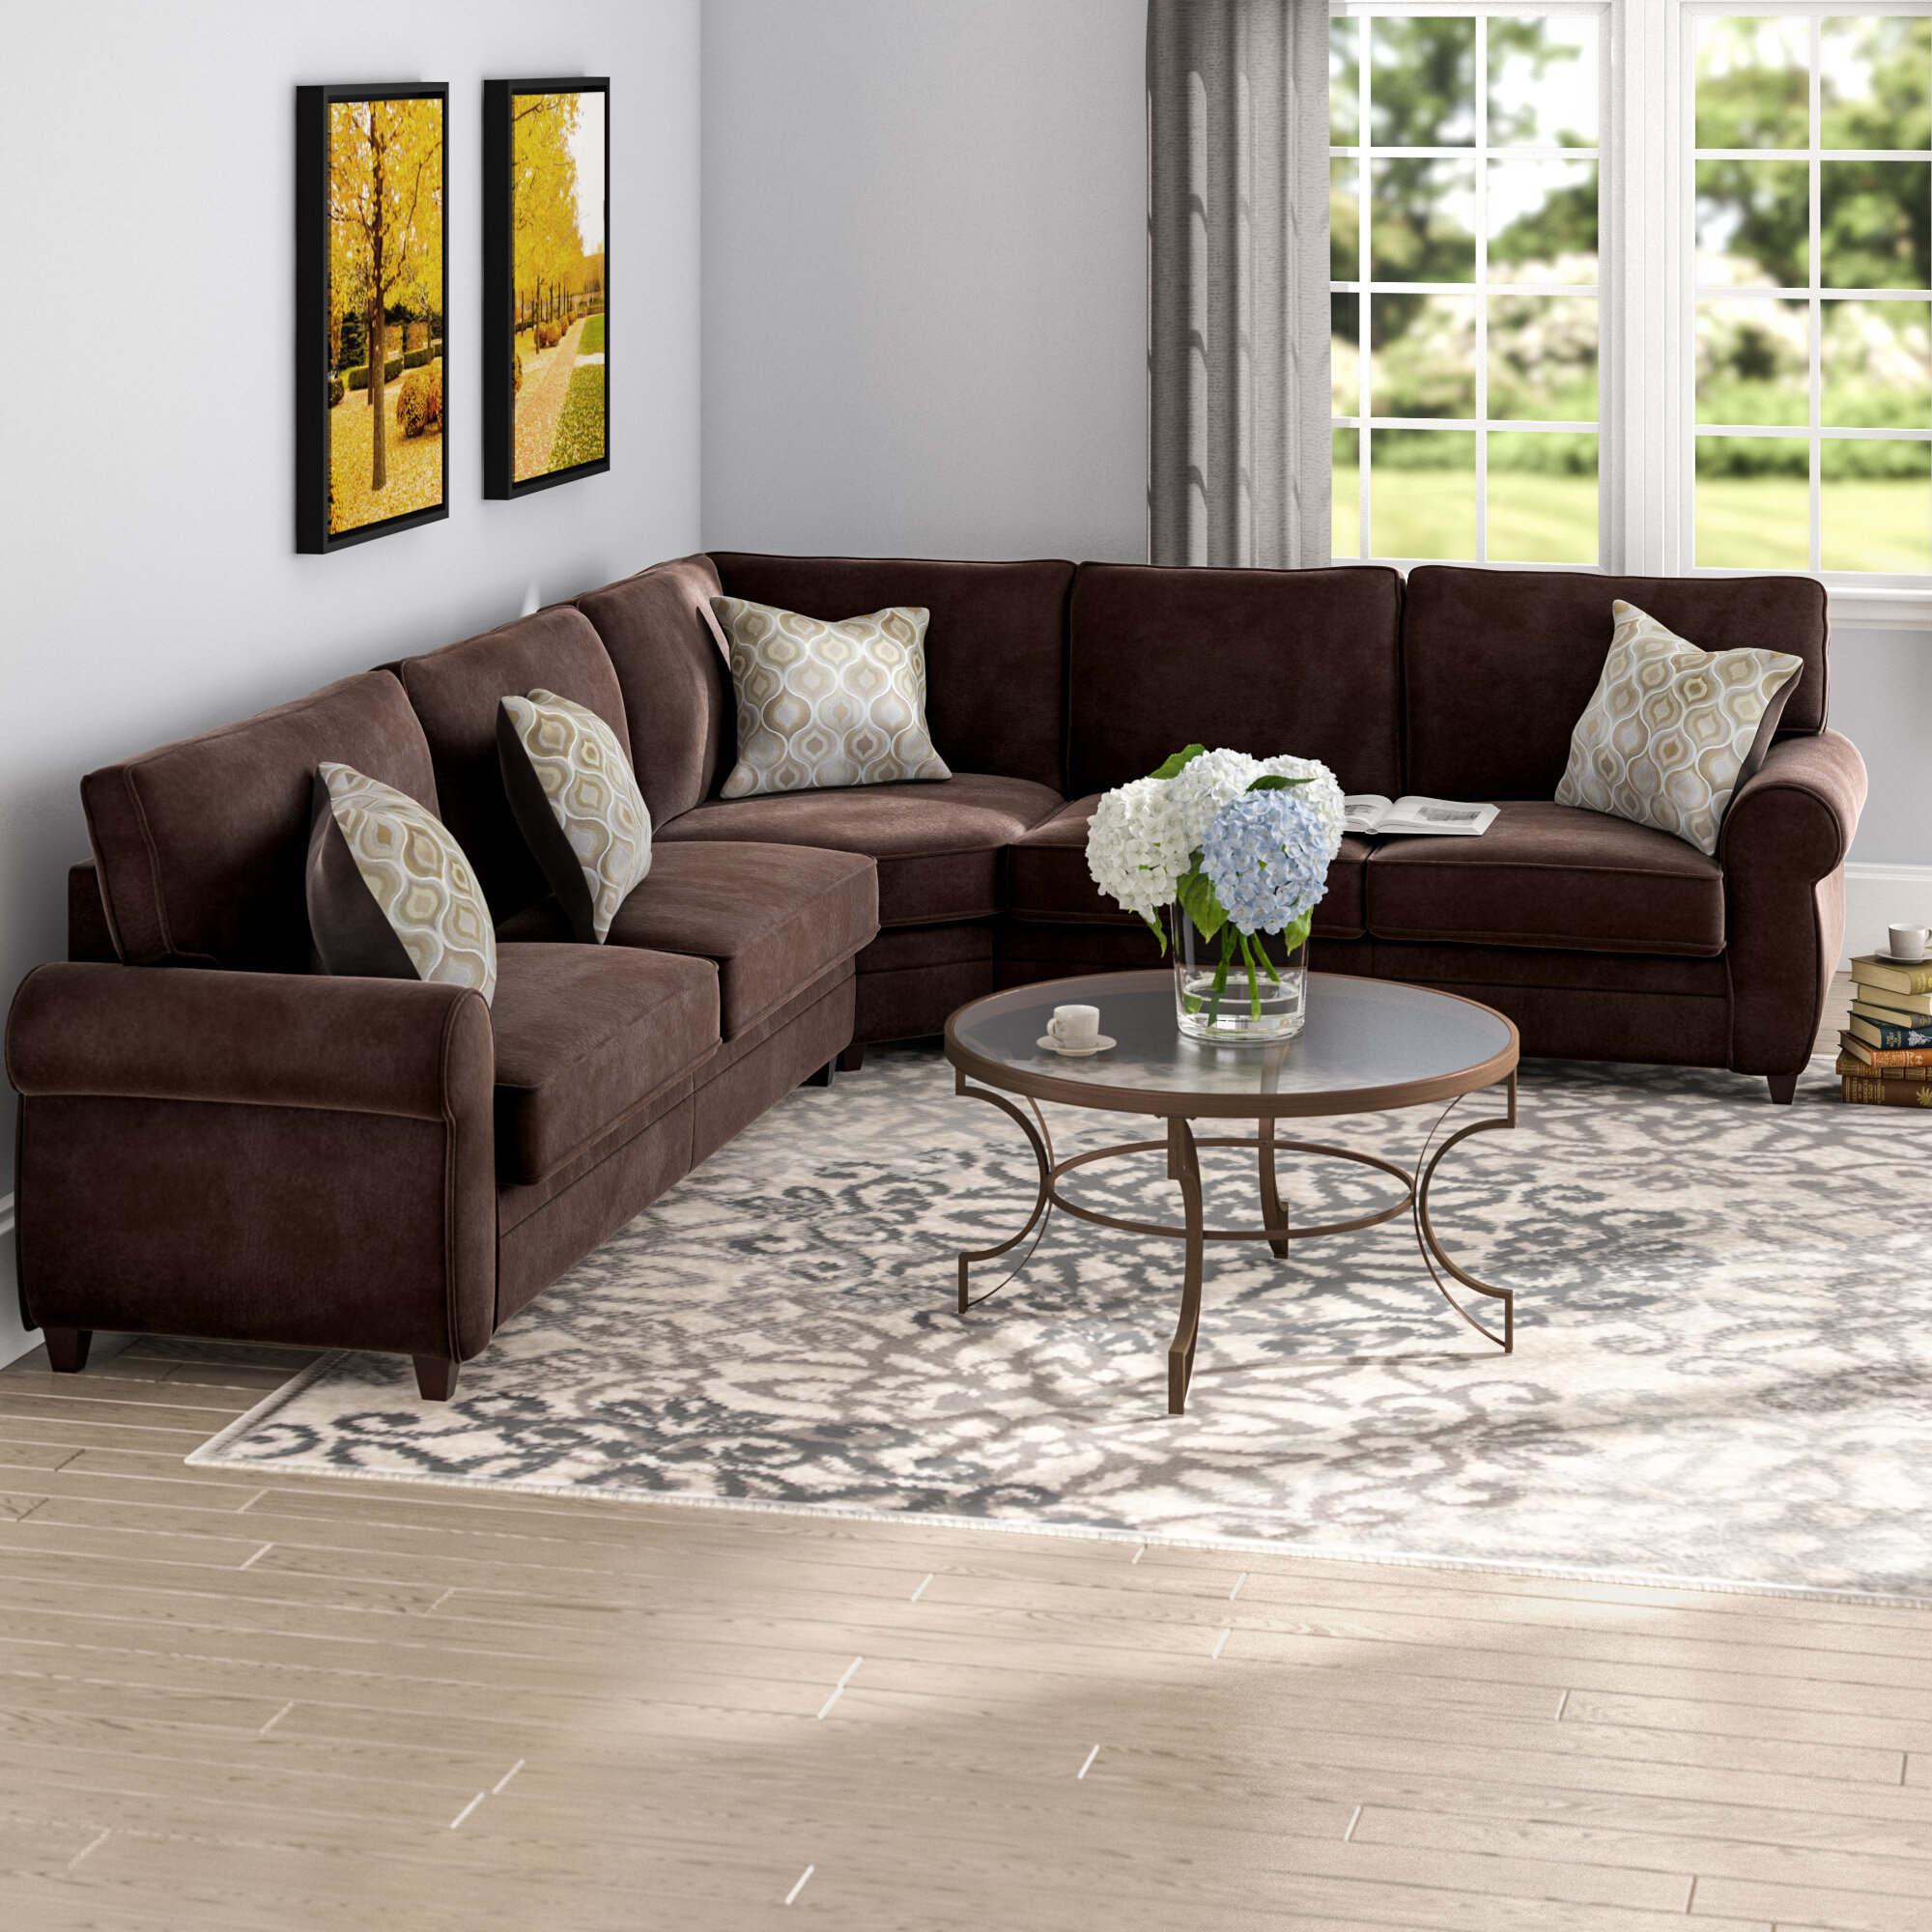 best to clearance guide regarding discount sofa furniture sectionals the throughout within couch sleeper endearing rooms sofas more sectional go home sales